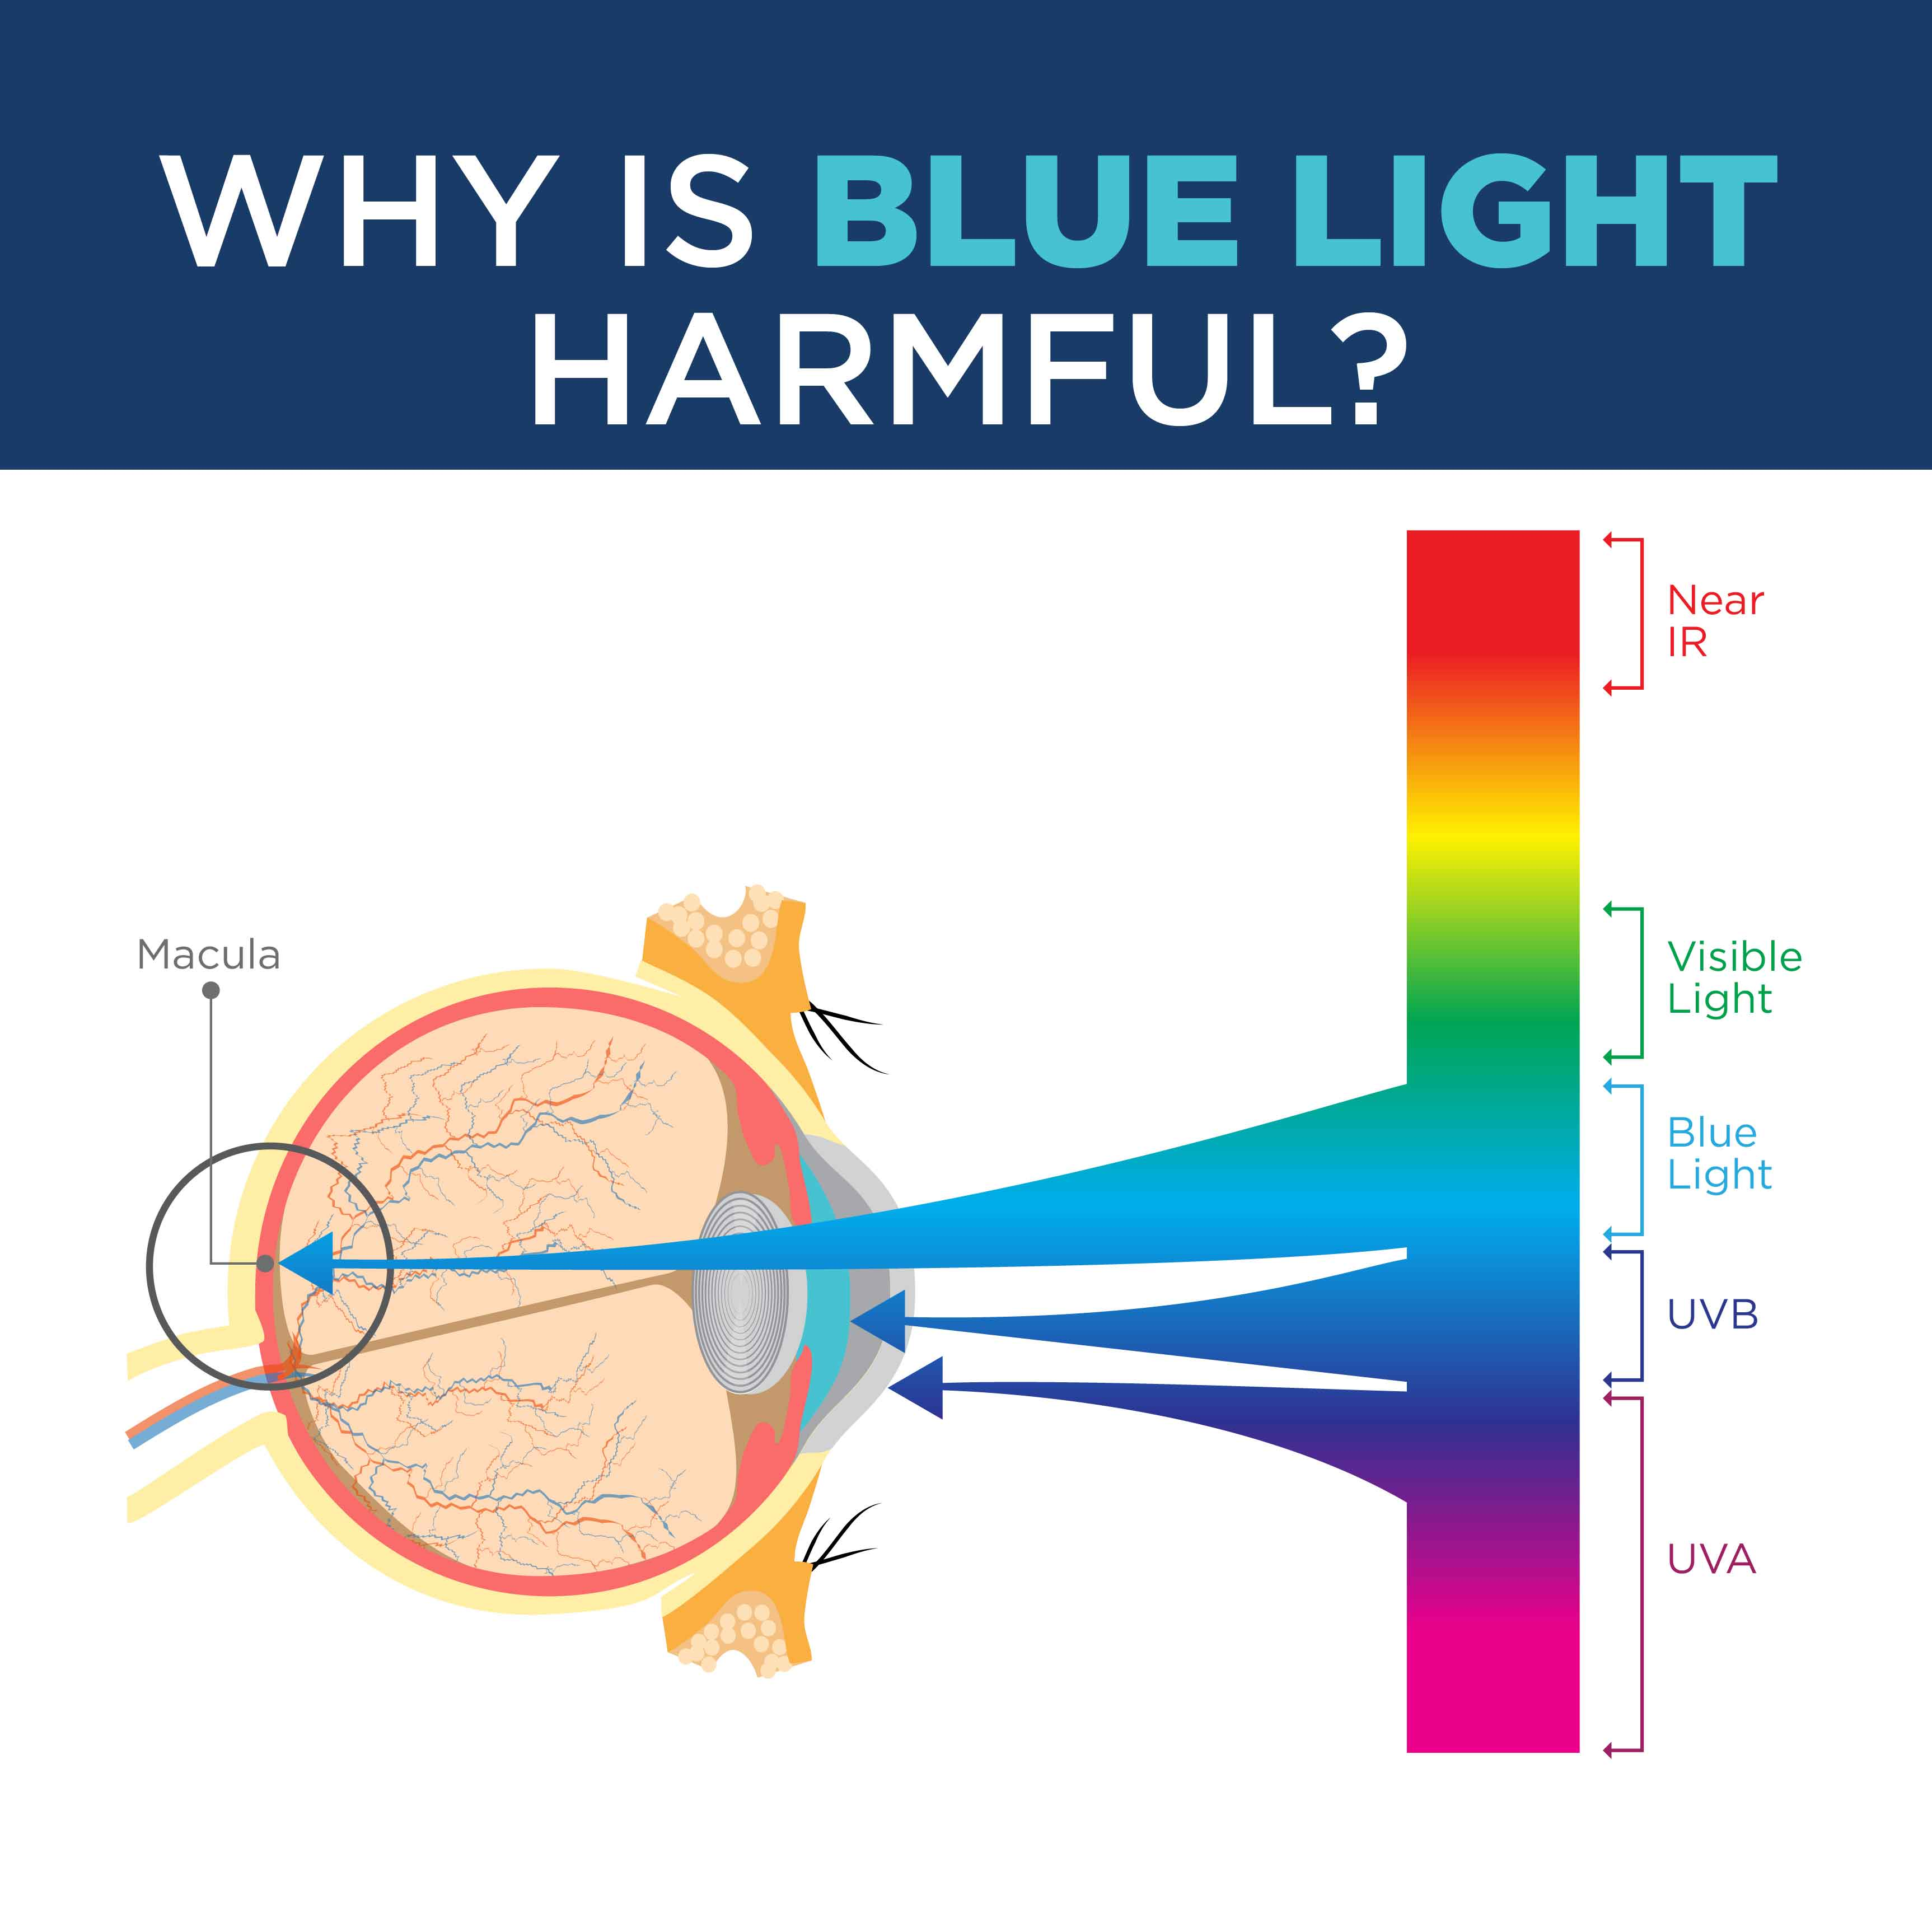 WHY IS BLUE LIGHT HARMFUL?